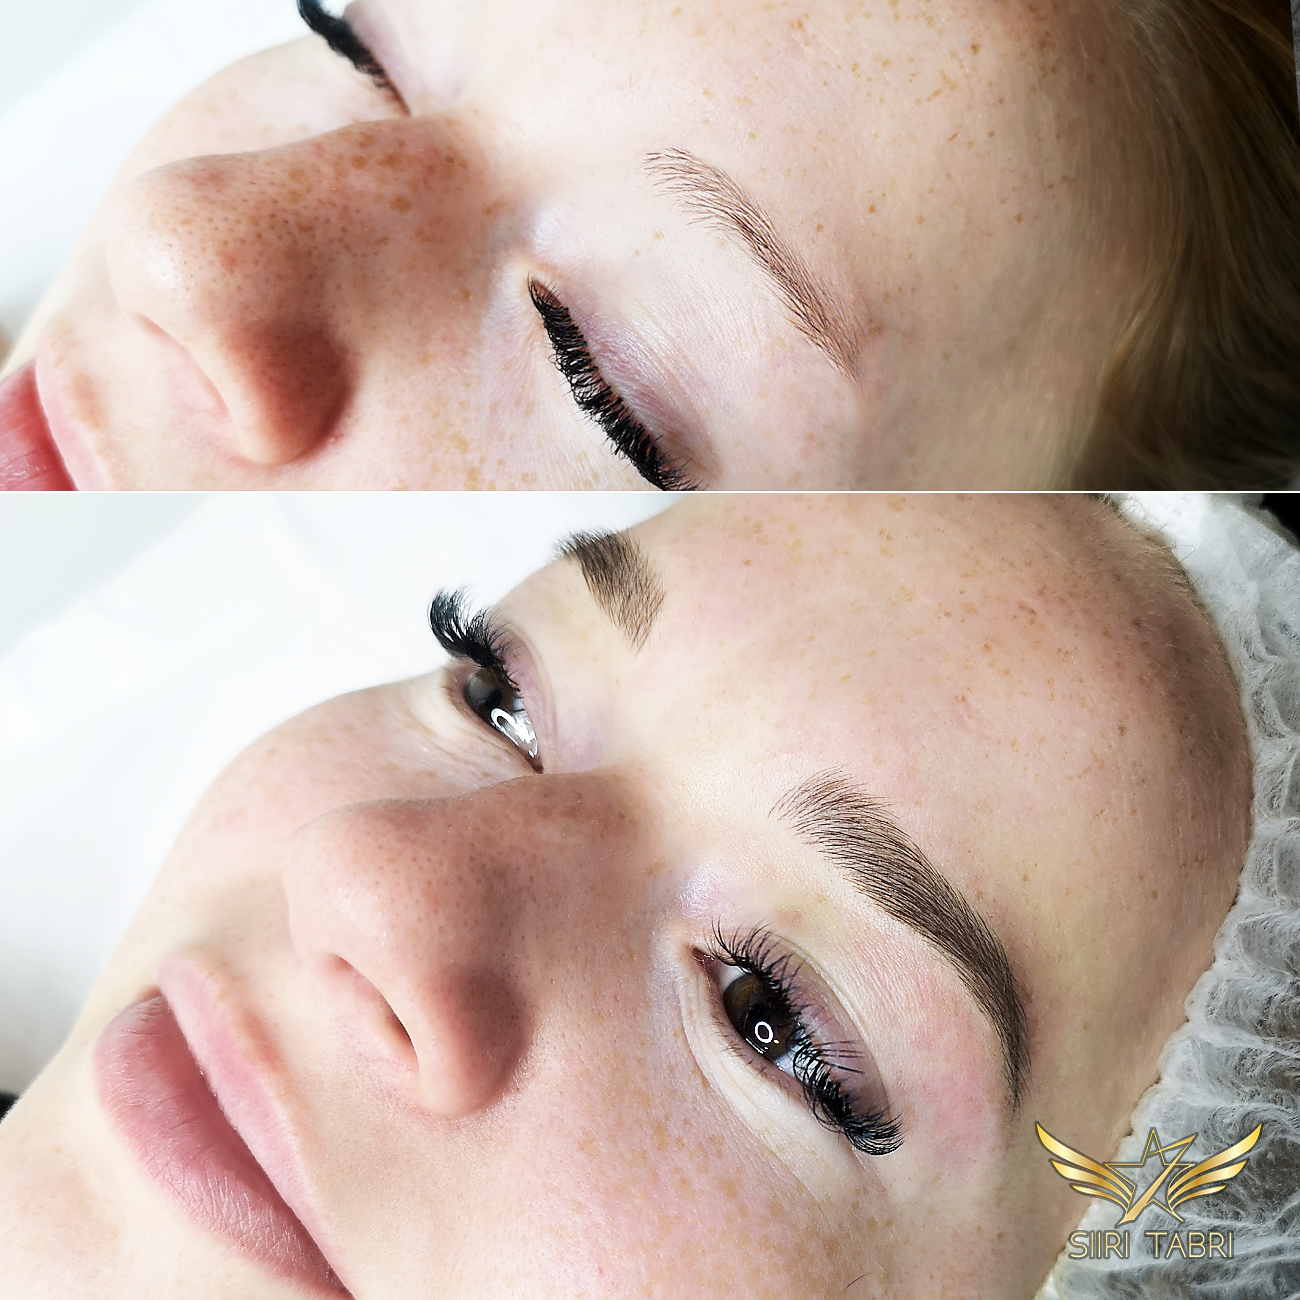 Light microblading. The client was so excited that she almost cried tears of happiness.